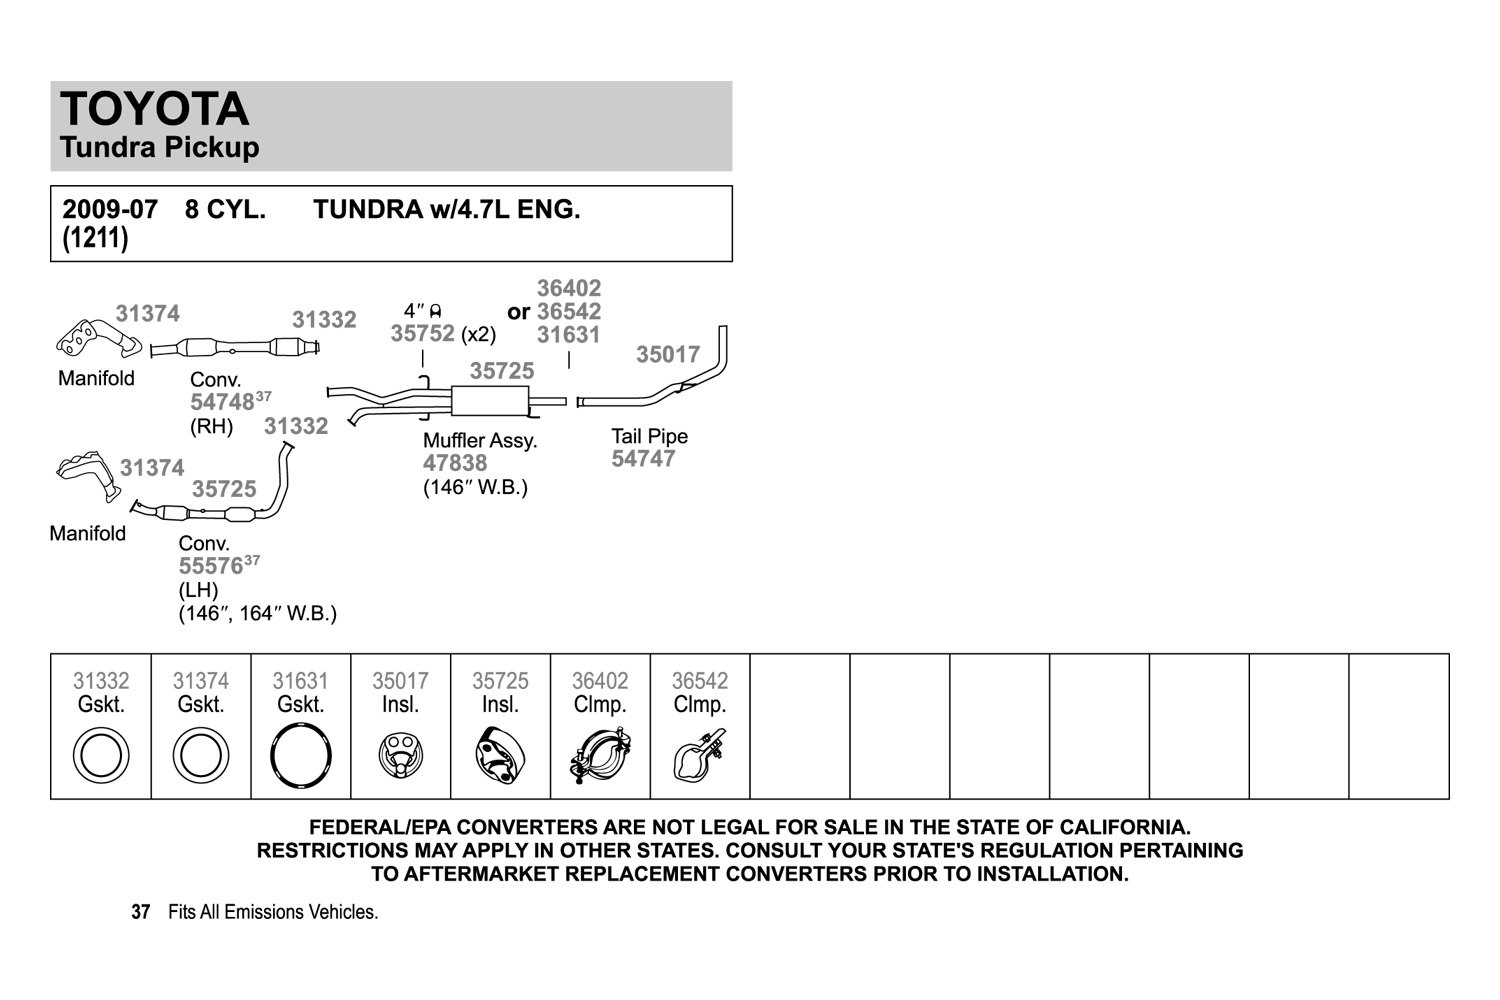 2004 toyota camry exhaust system diagram trailer wiring diagrams 4 pin celica parts circuit symbols